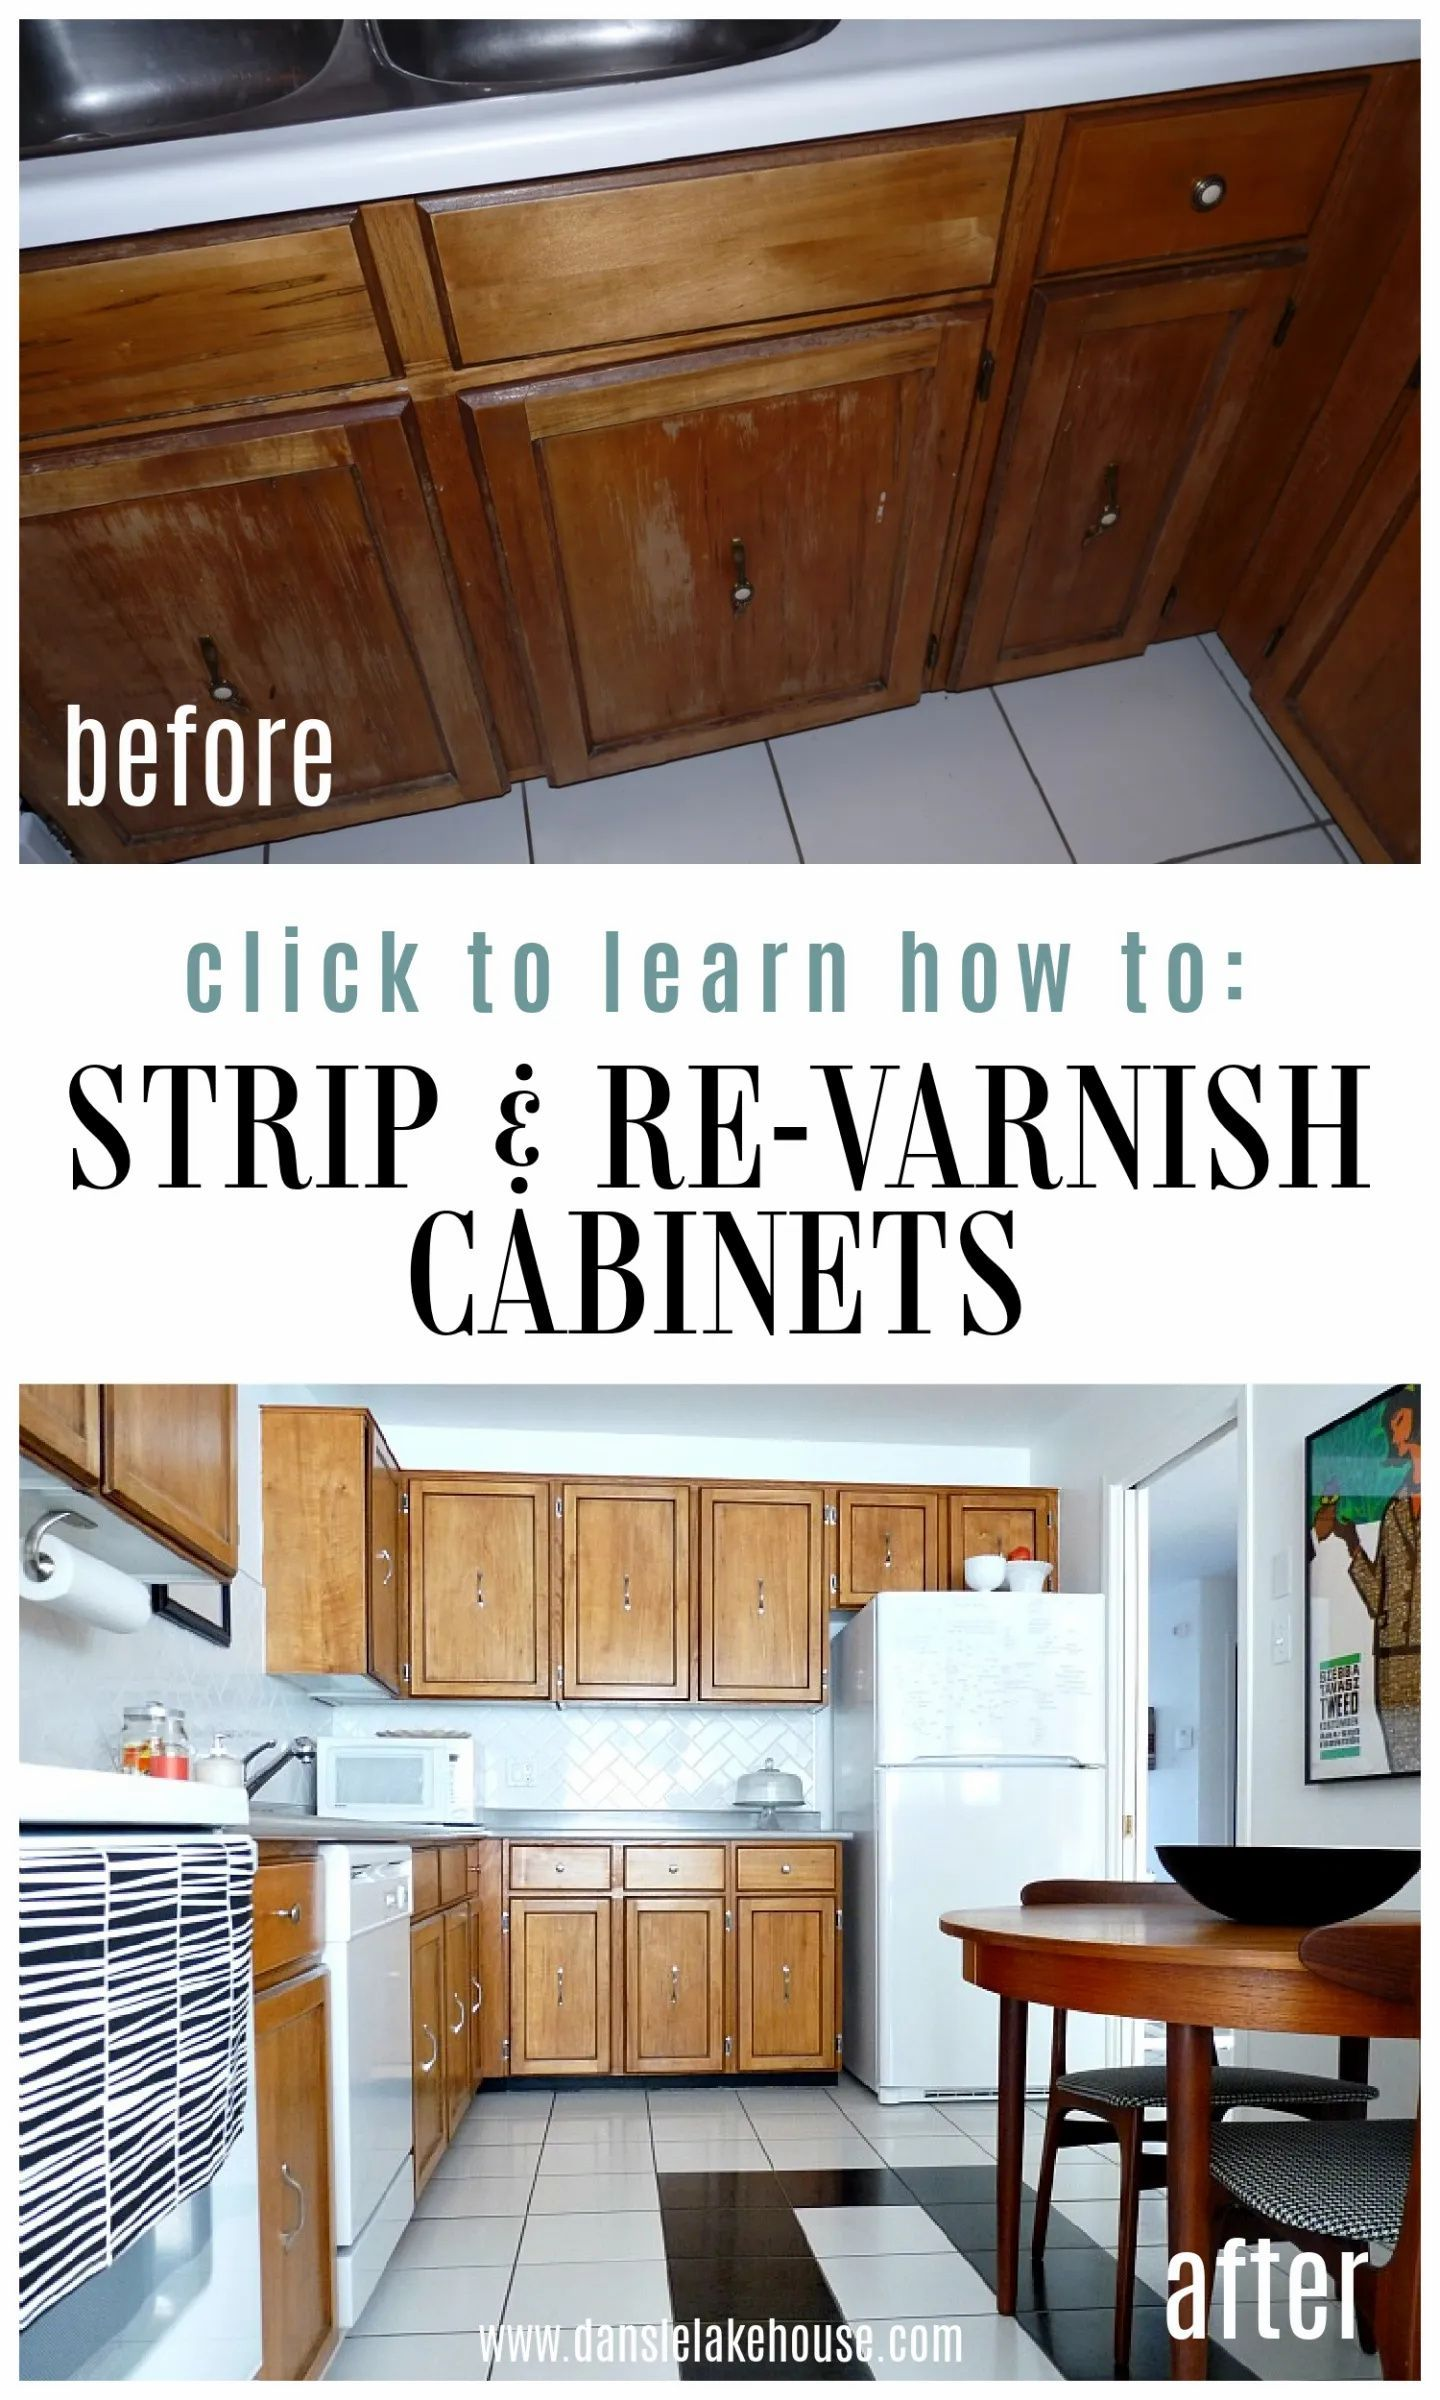 How To Re Varnish Cabinets Dans Le Lakehouse In 2021 Update Kitchen Cabinets Without Painting How To Update Kitchen Cabinets Furniture Makeover